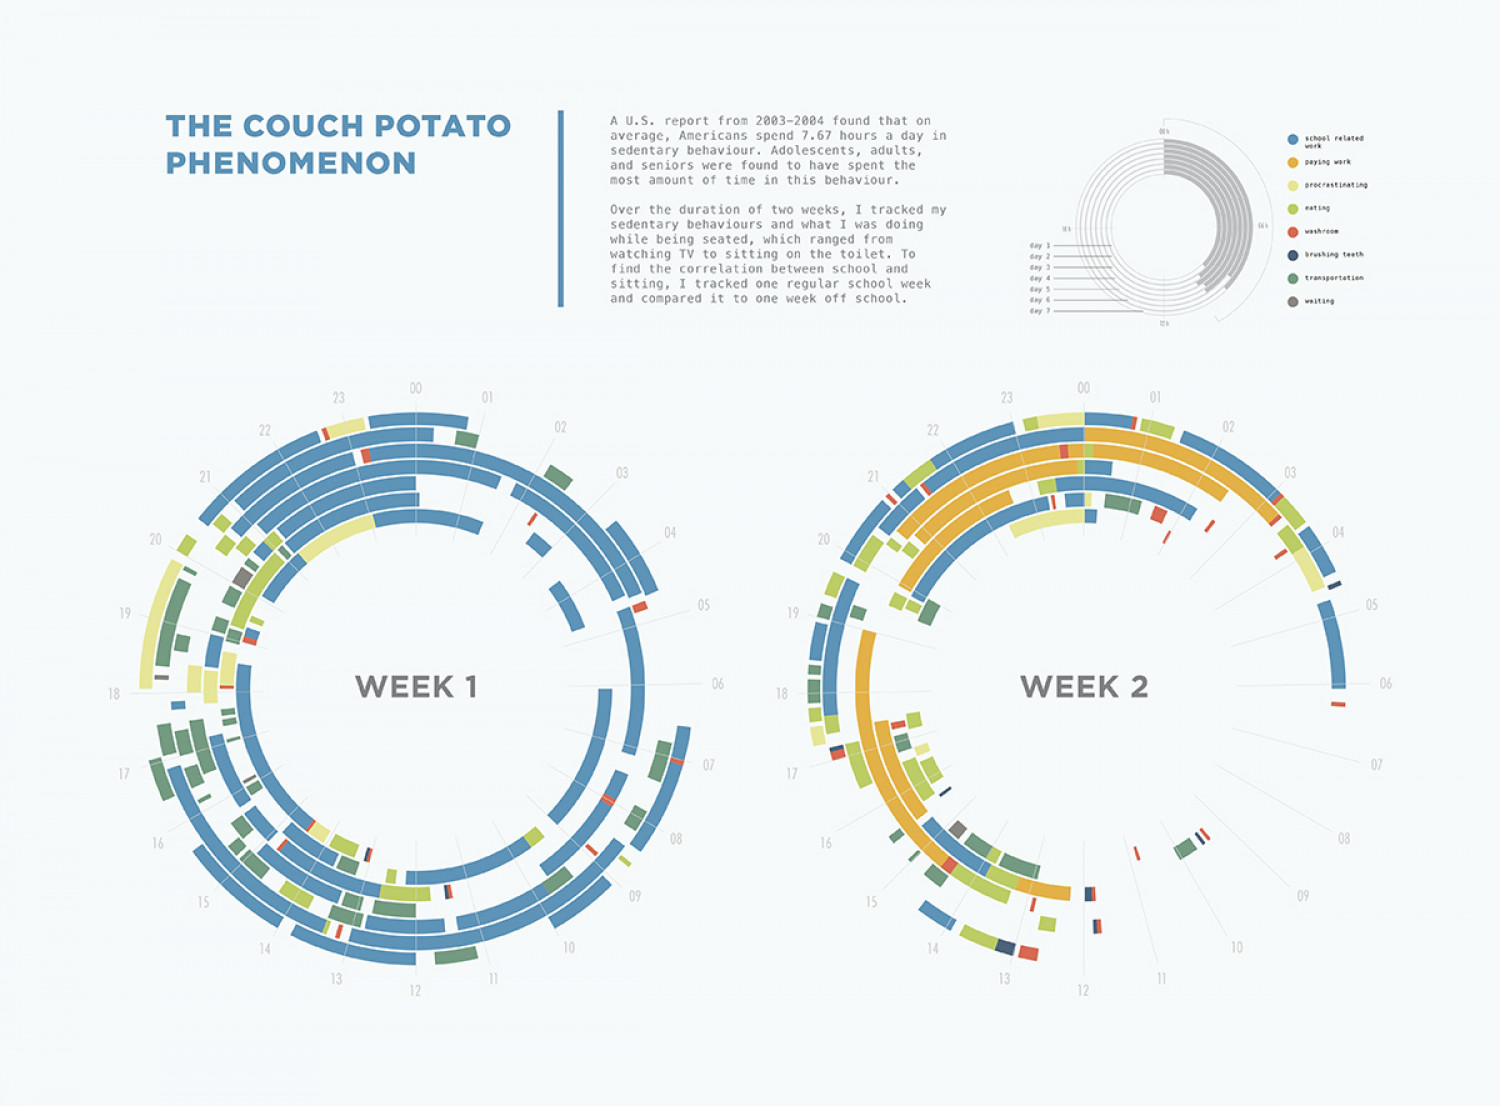 The Couch Potato Phenomenon Infographic